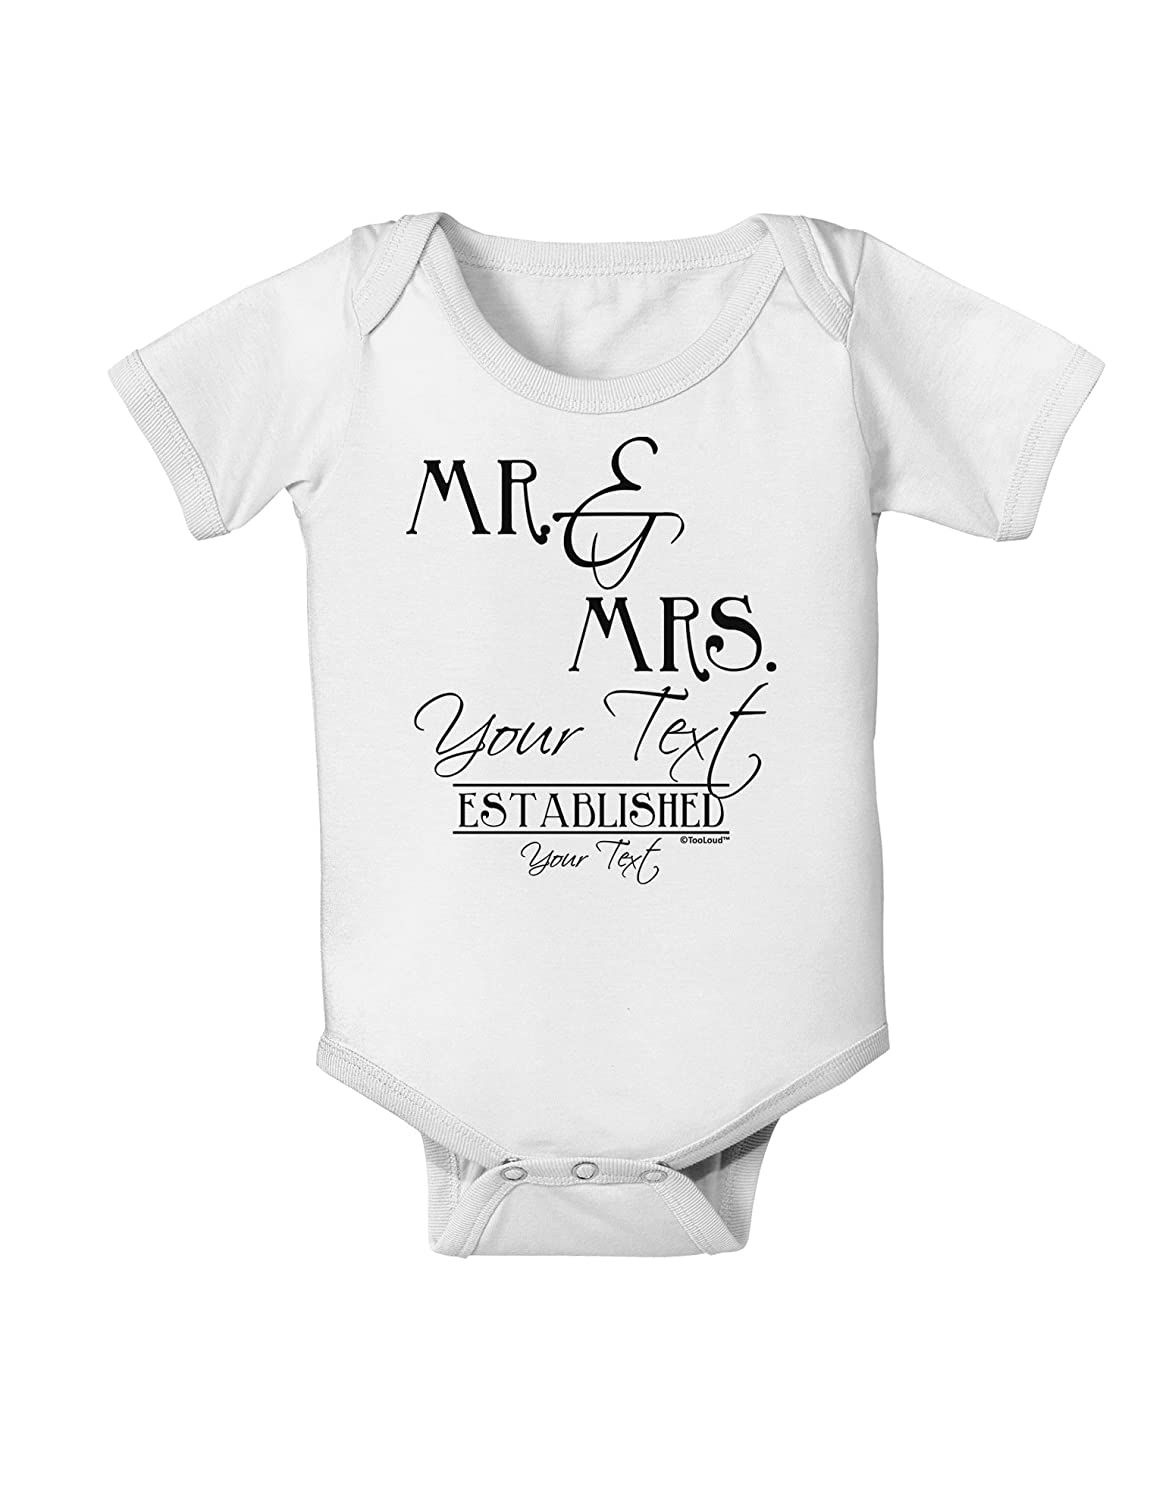 Name Date Established Design Baby Romper Bodysuit TooLoud Personalized Mr and Mrs